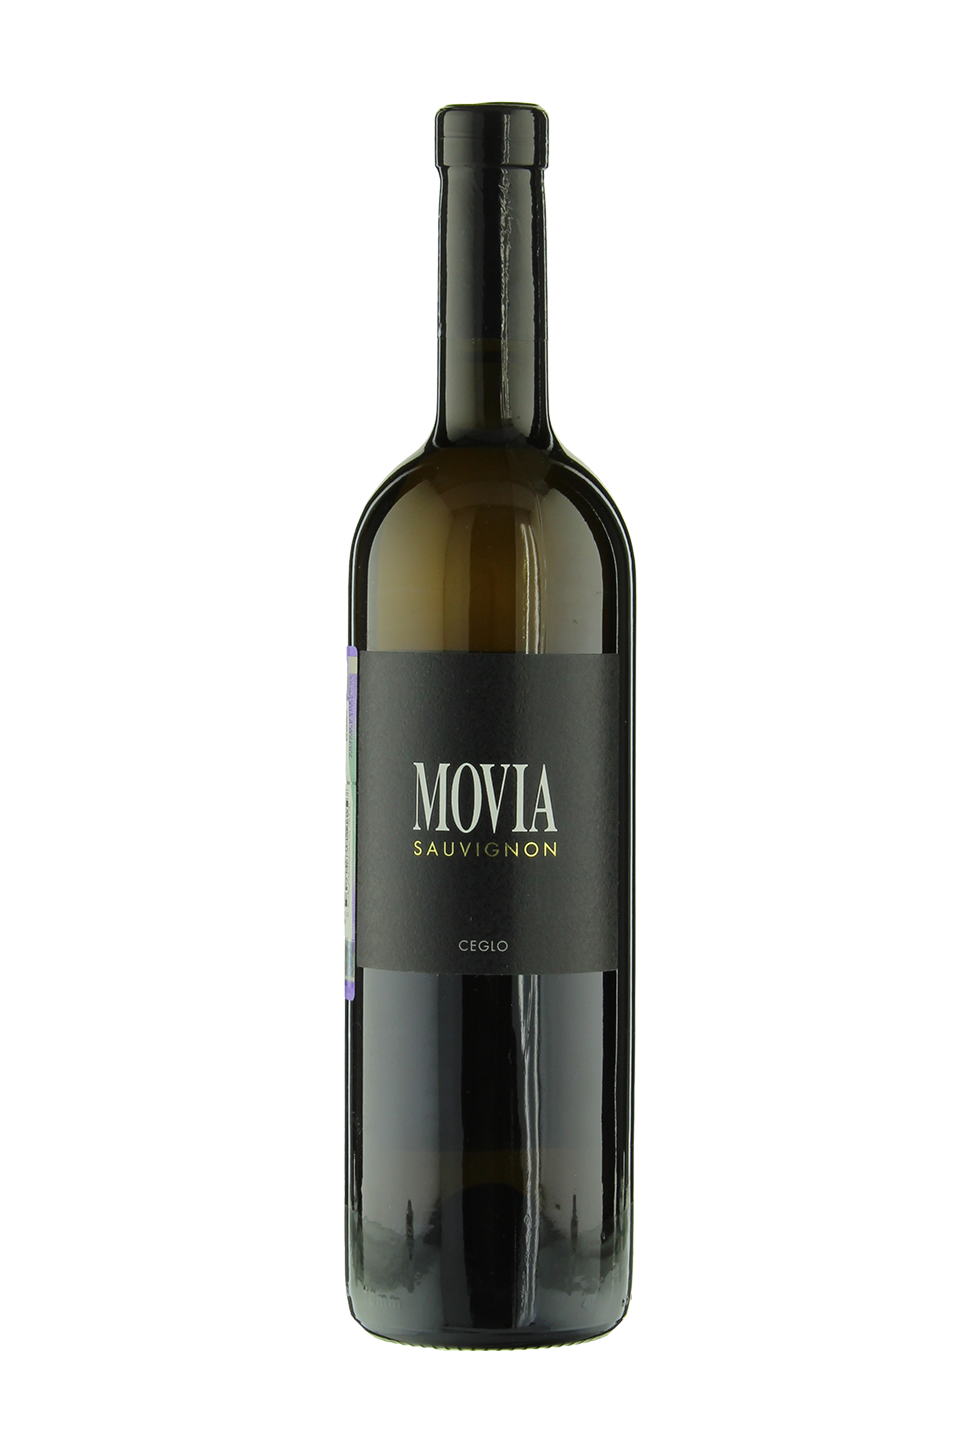 Movia Sauvignon Brda